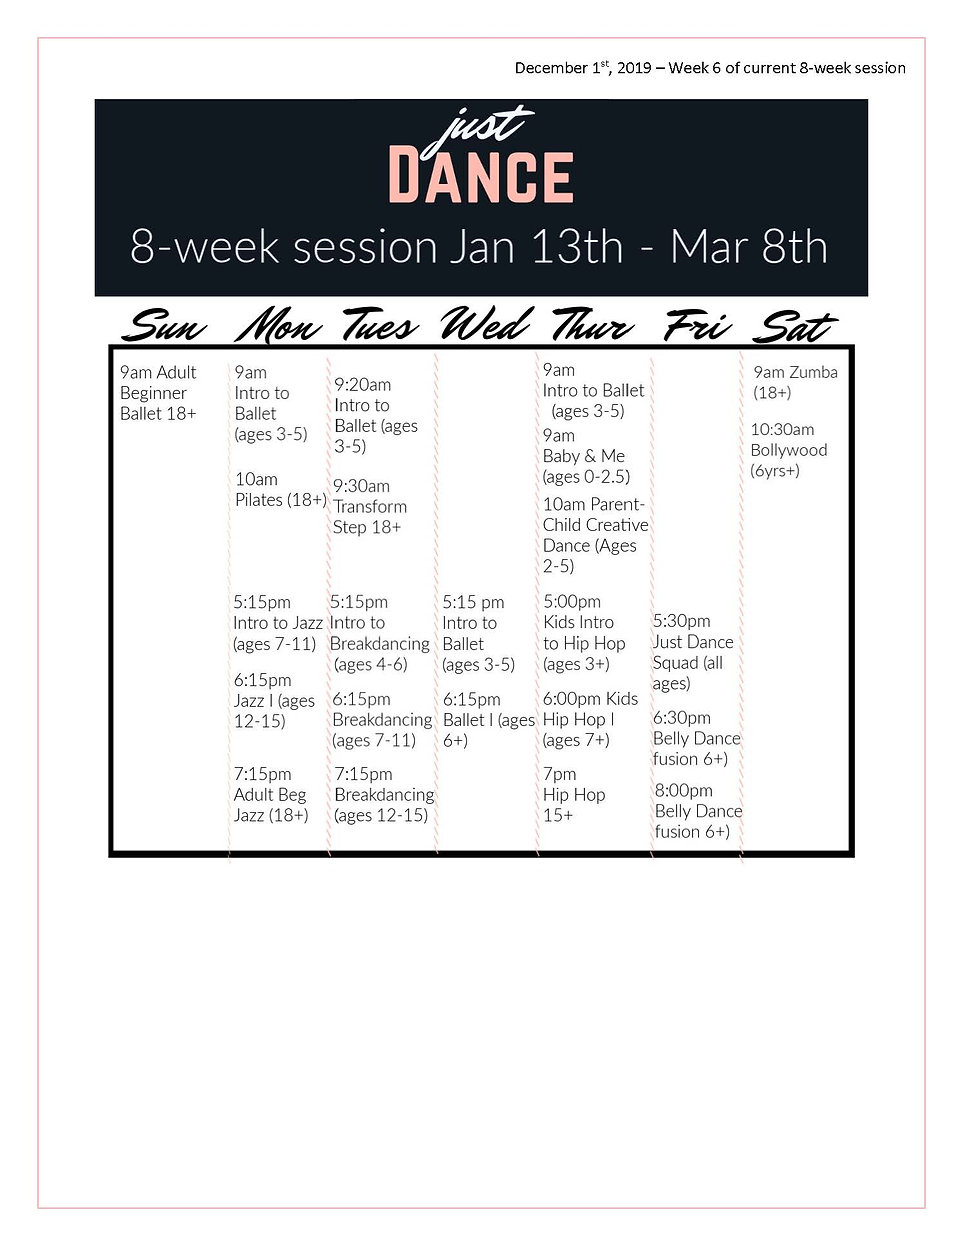 Just Dance Newsletter - Dec 2nd, 2019_Pa